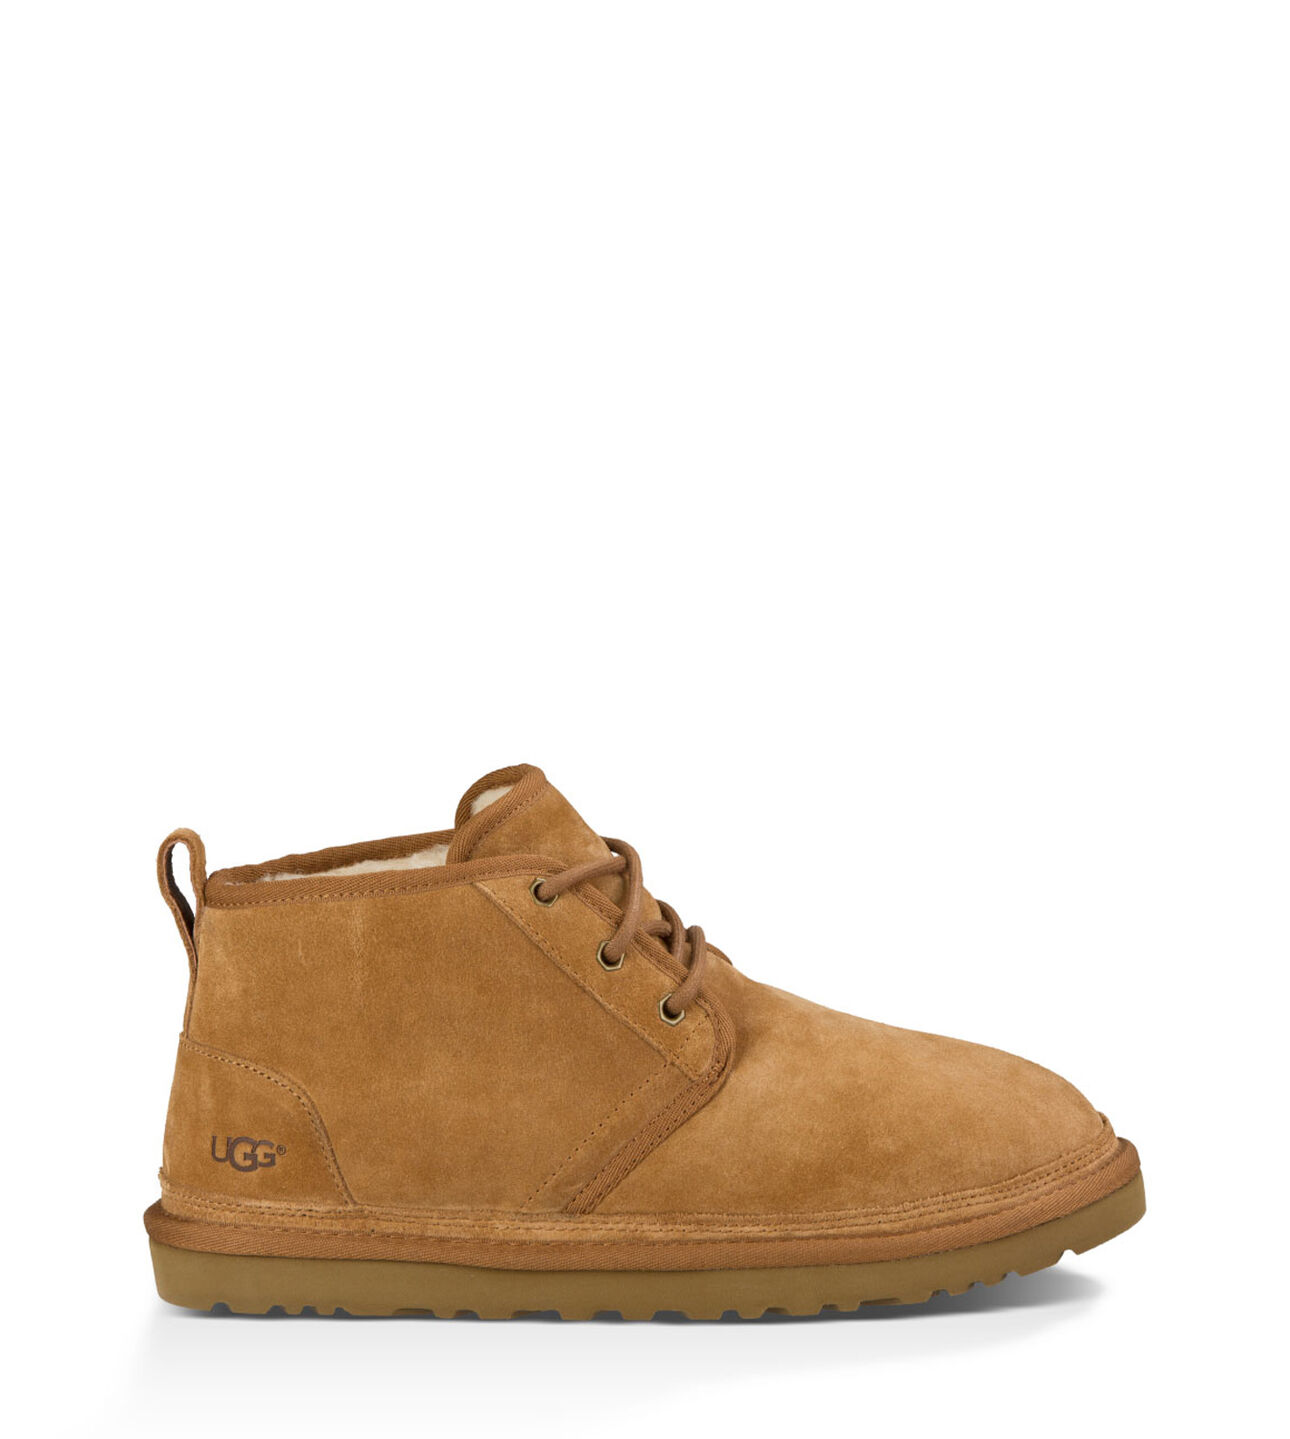 Ugg Neumel Mens Lace Up Casual Shoes